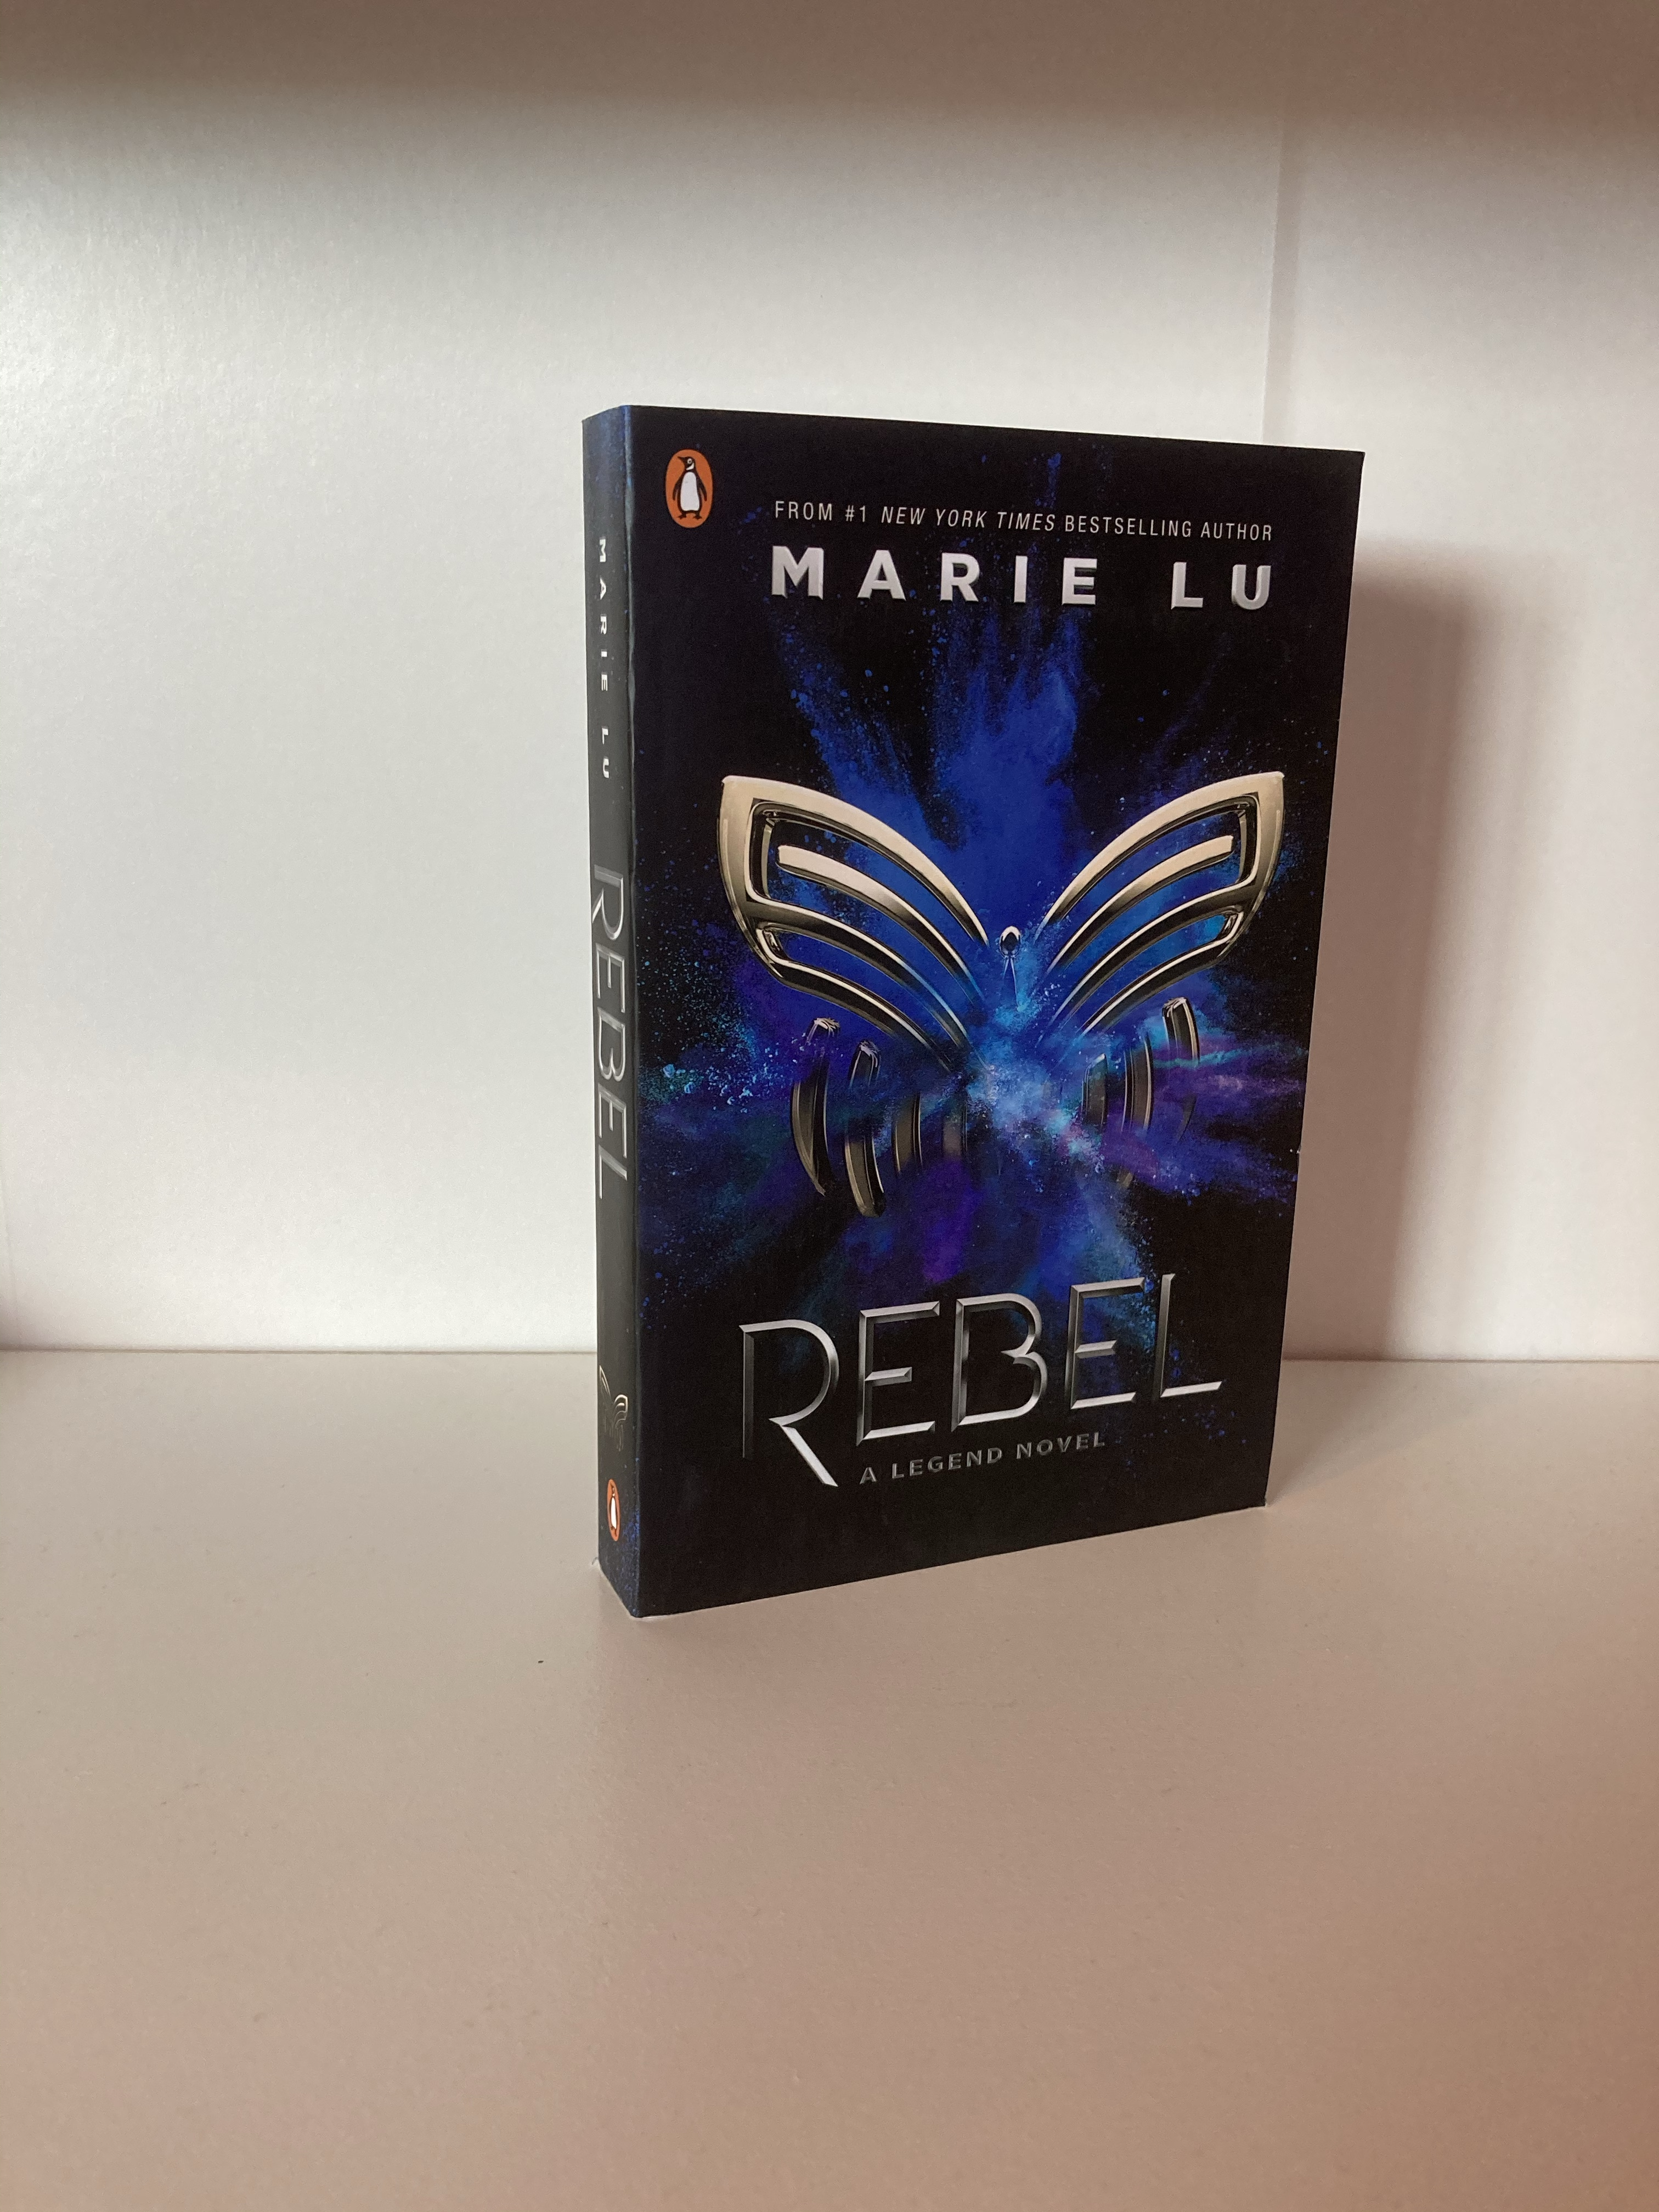 The cover of Rebel by Marie Lu